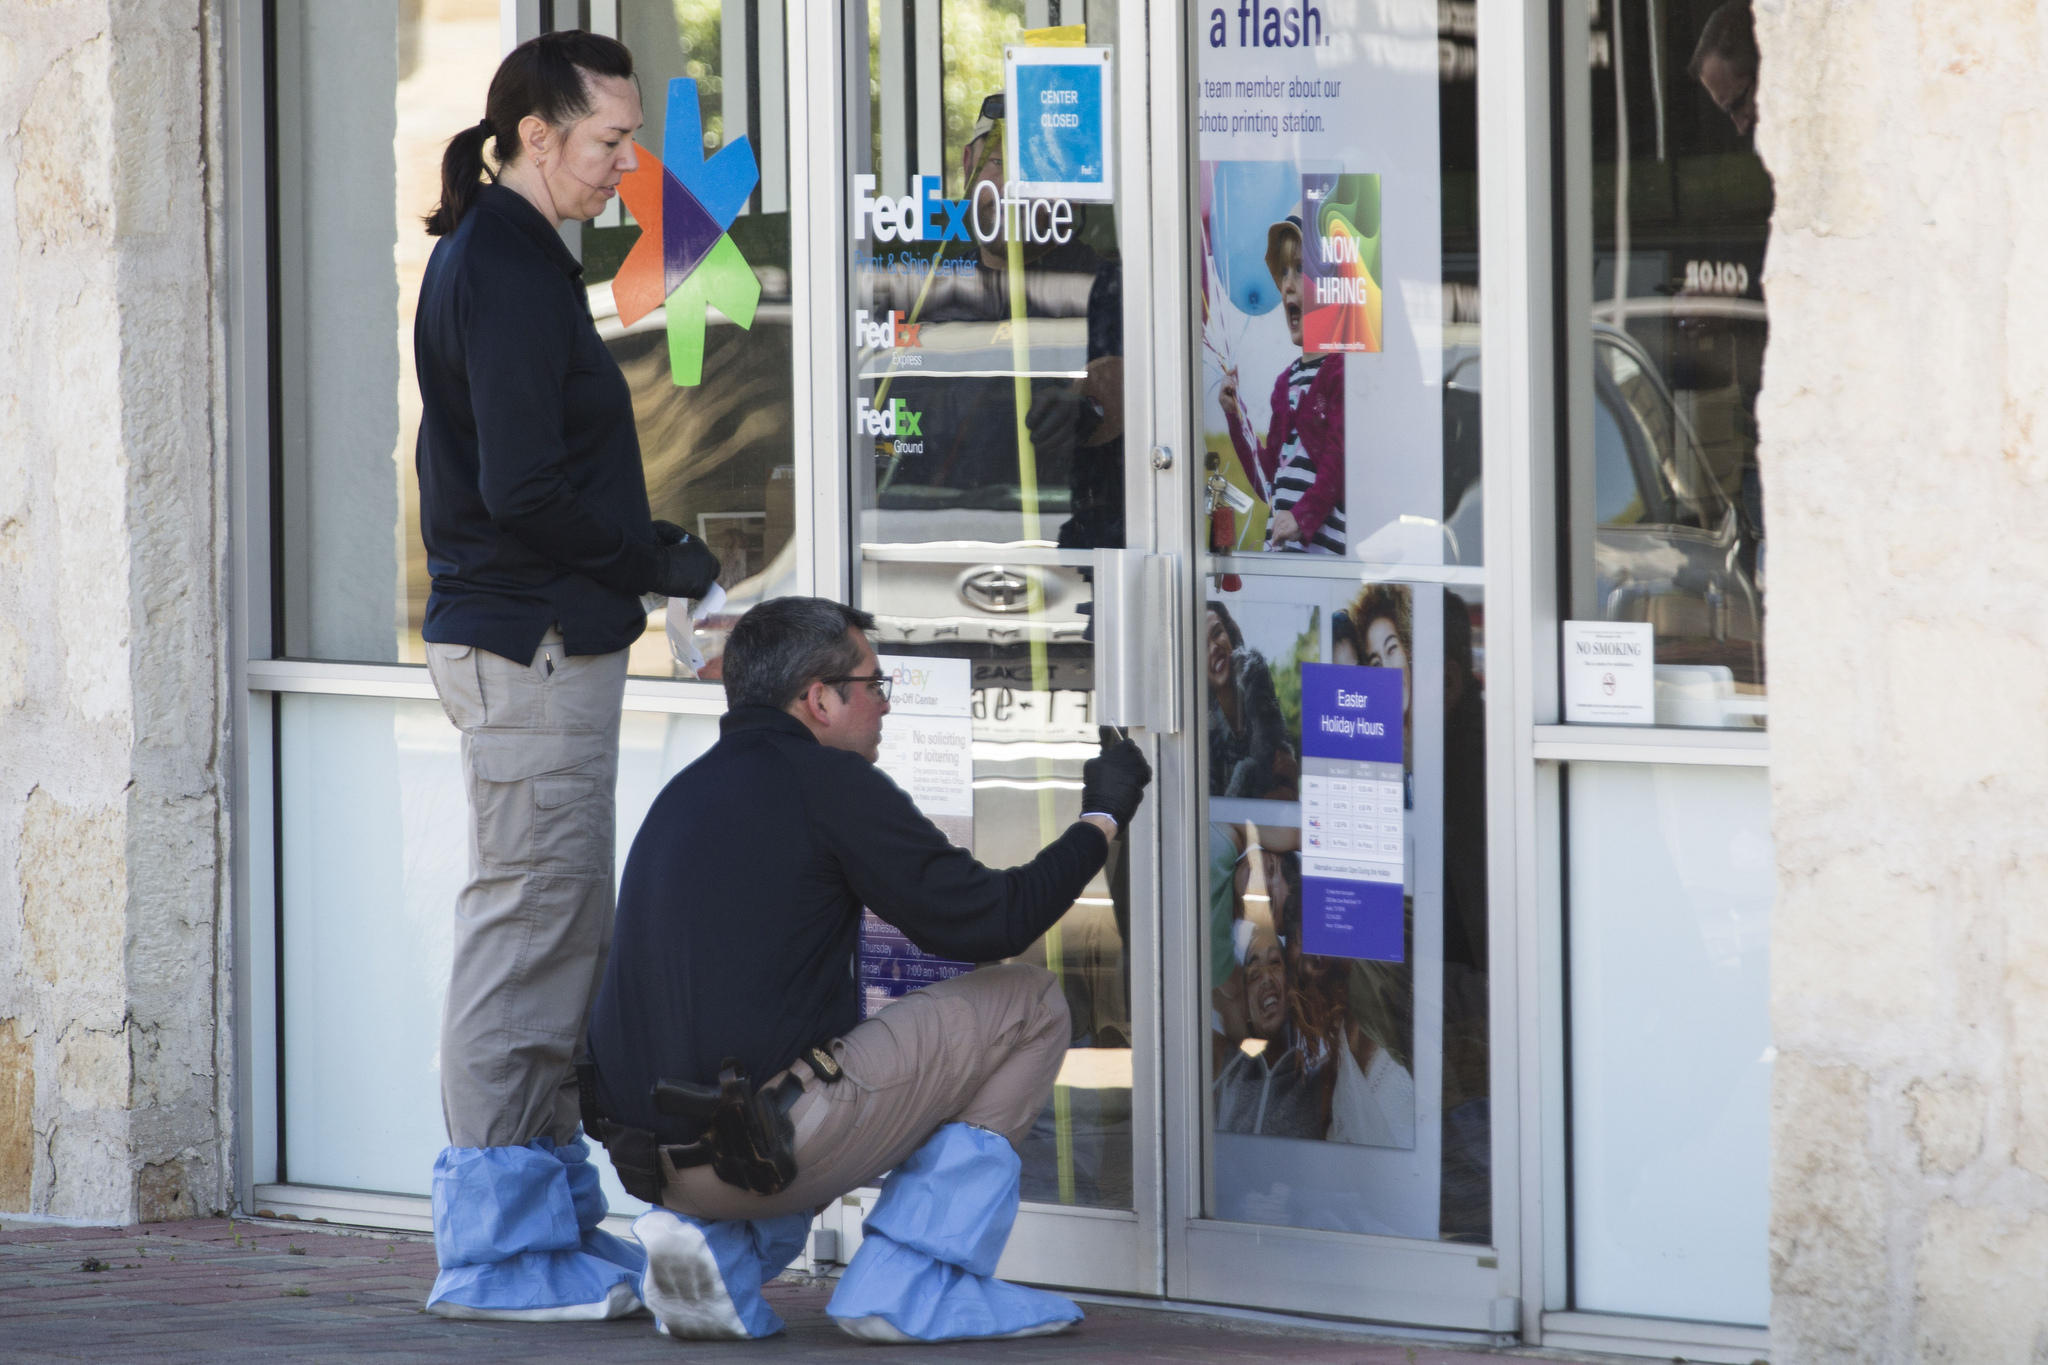 Authorities defuse bomb found at fedex in austin after for Fedex office davis ca